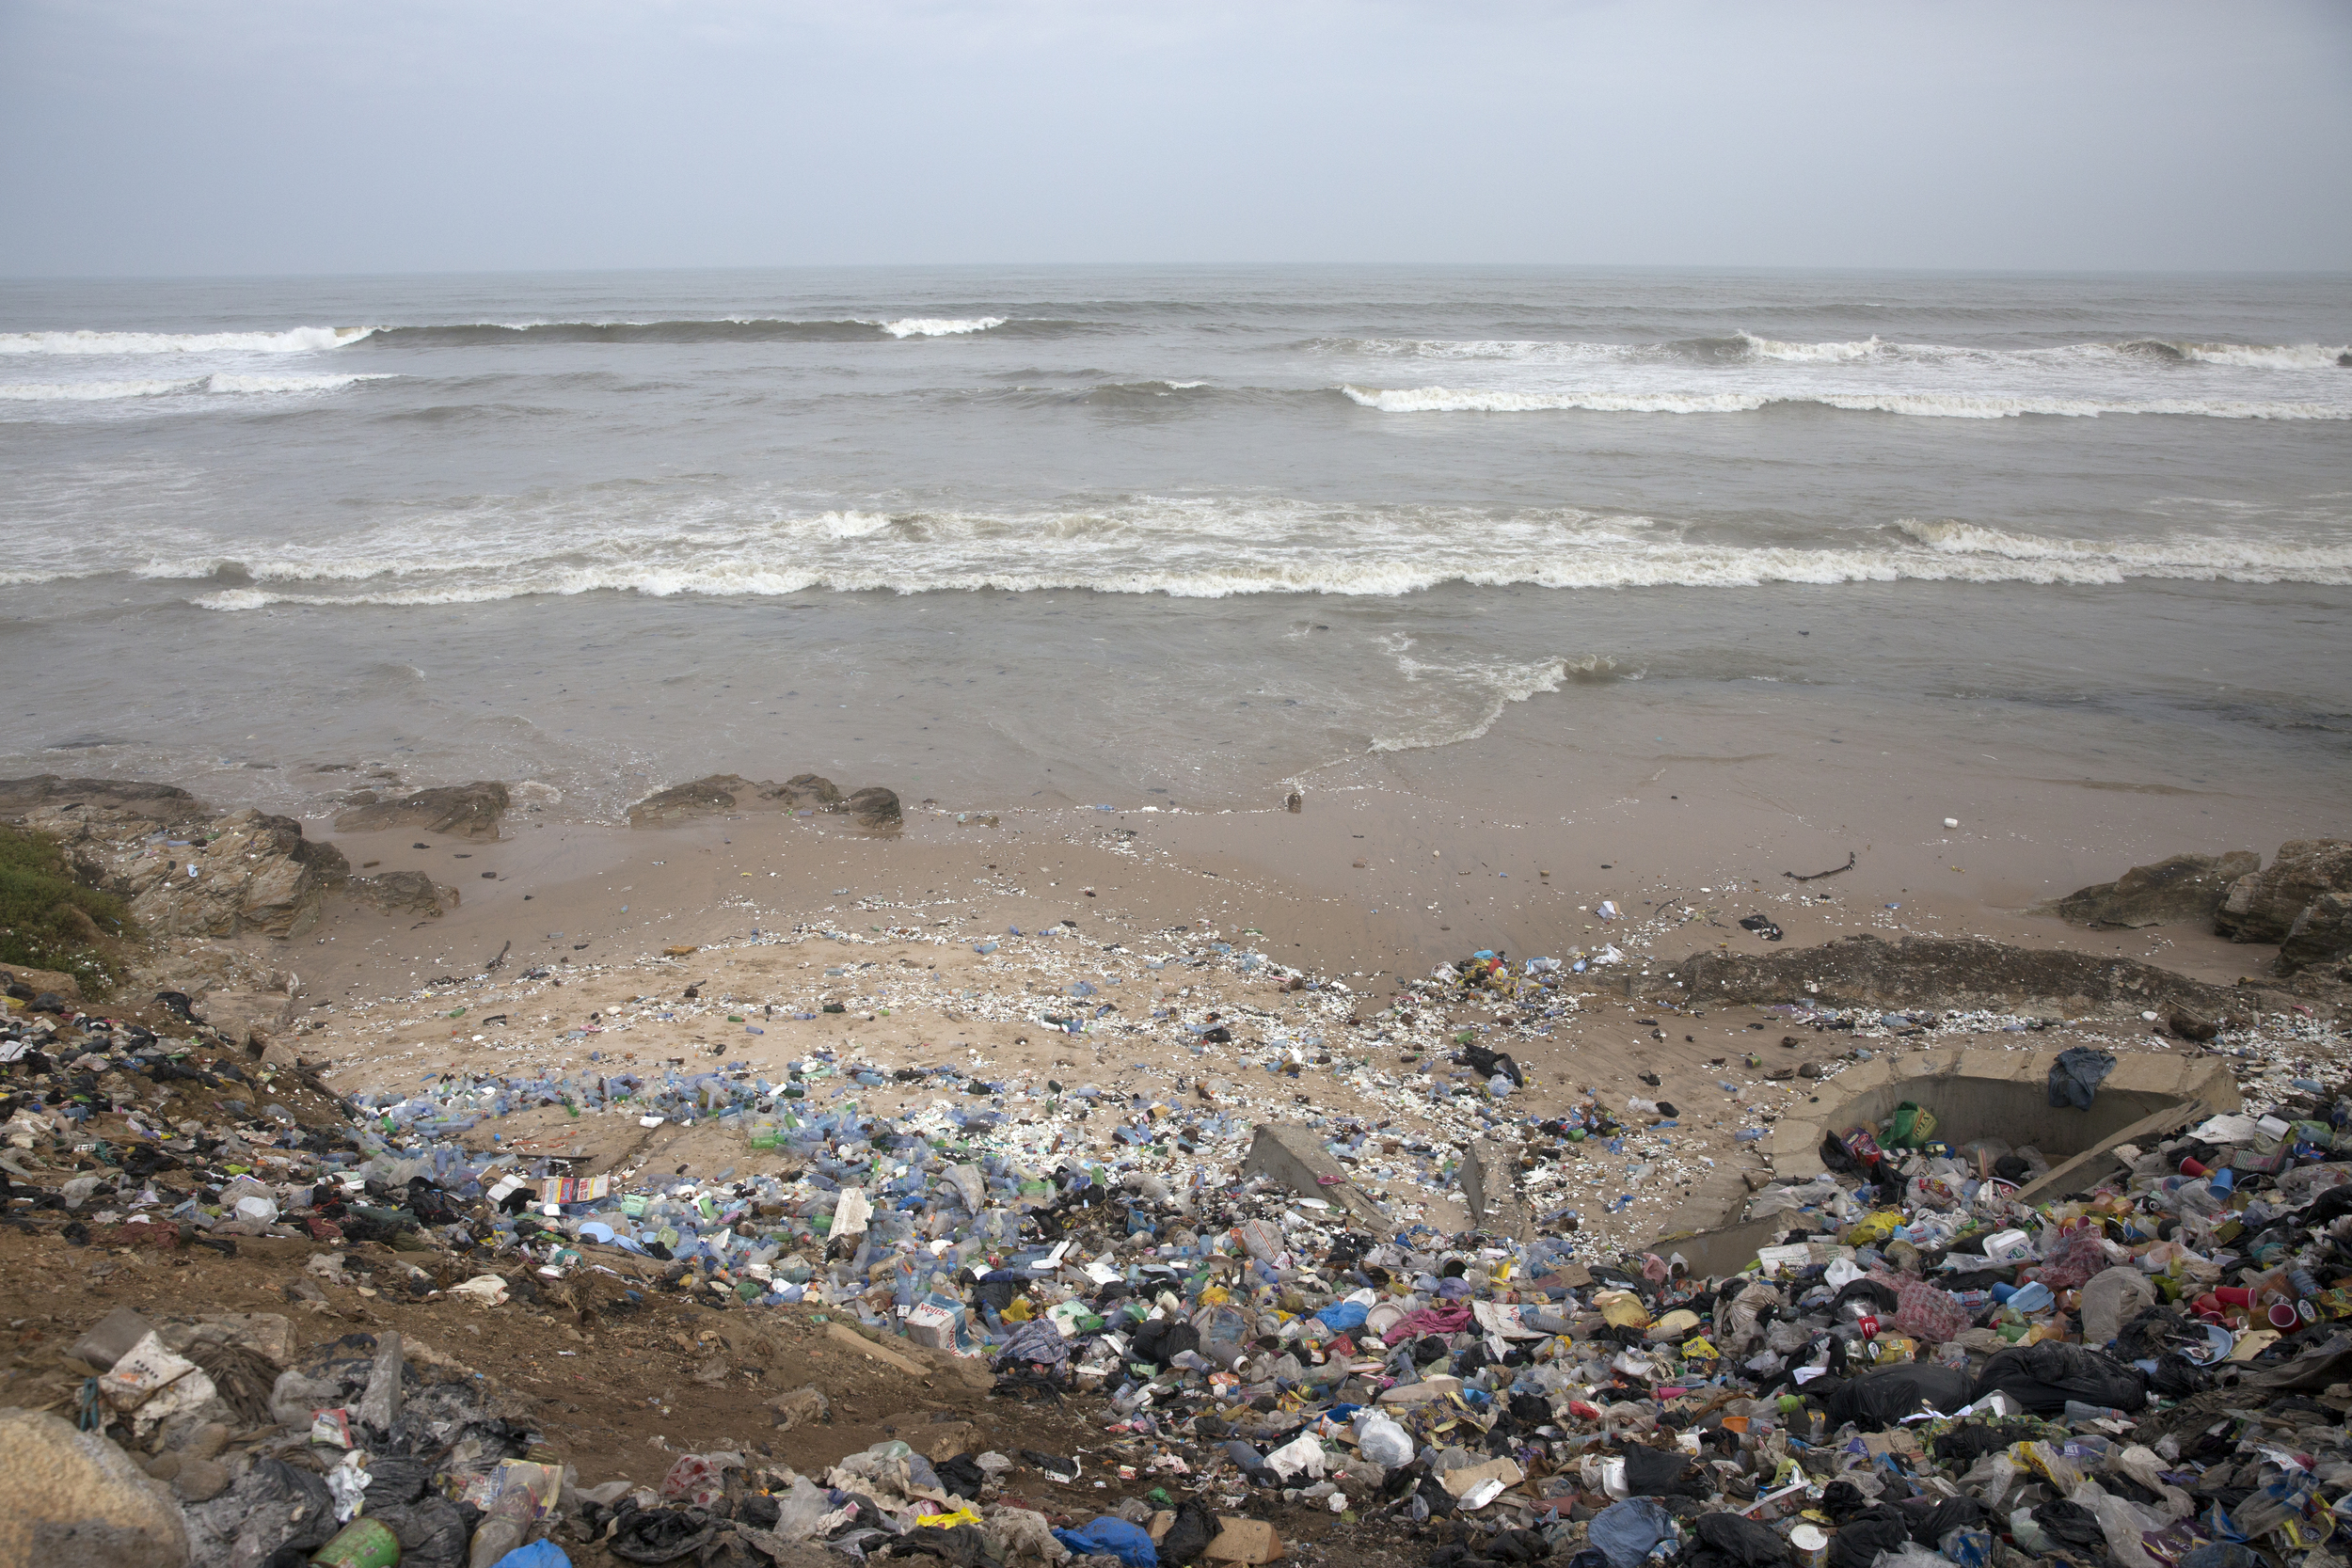 As you can see, a  lot  of people litter on this beach...